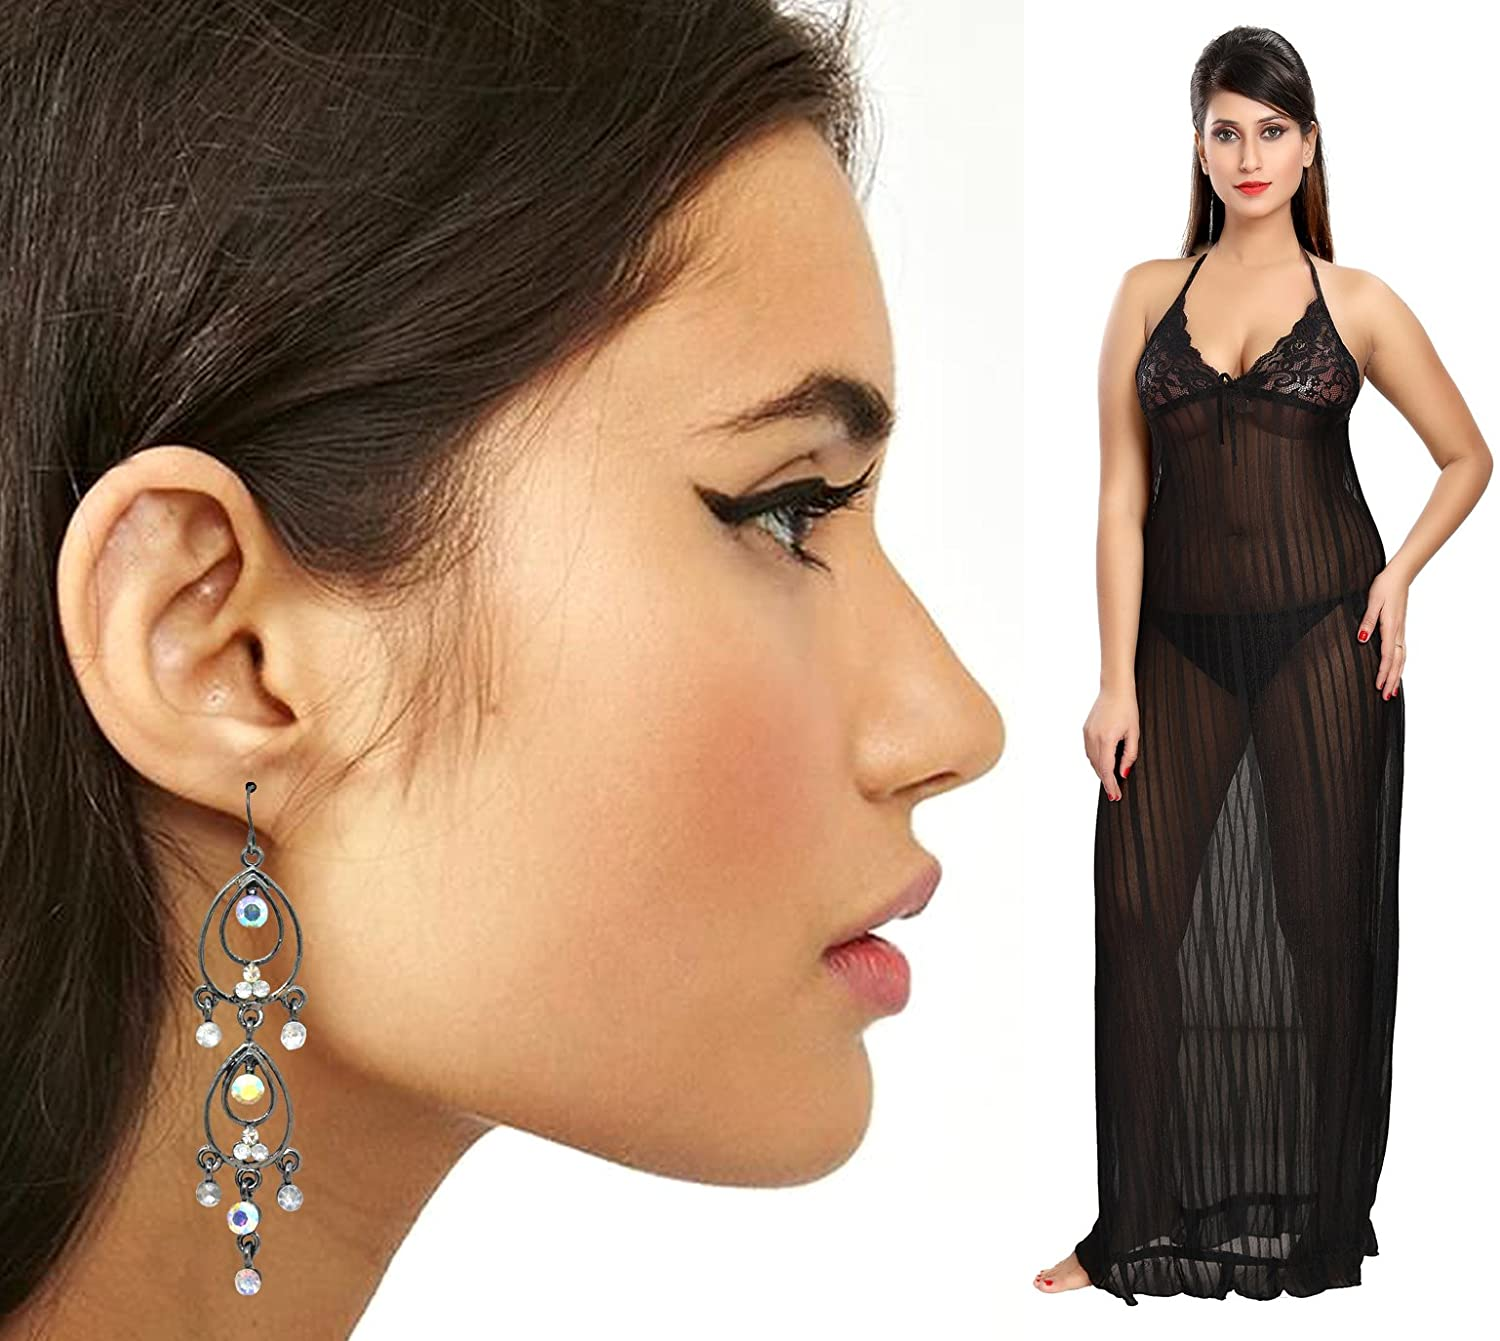 Be You Nighty & Earring Valentines Gifts for Wife Black